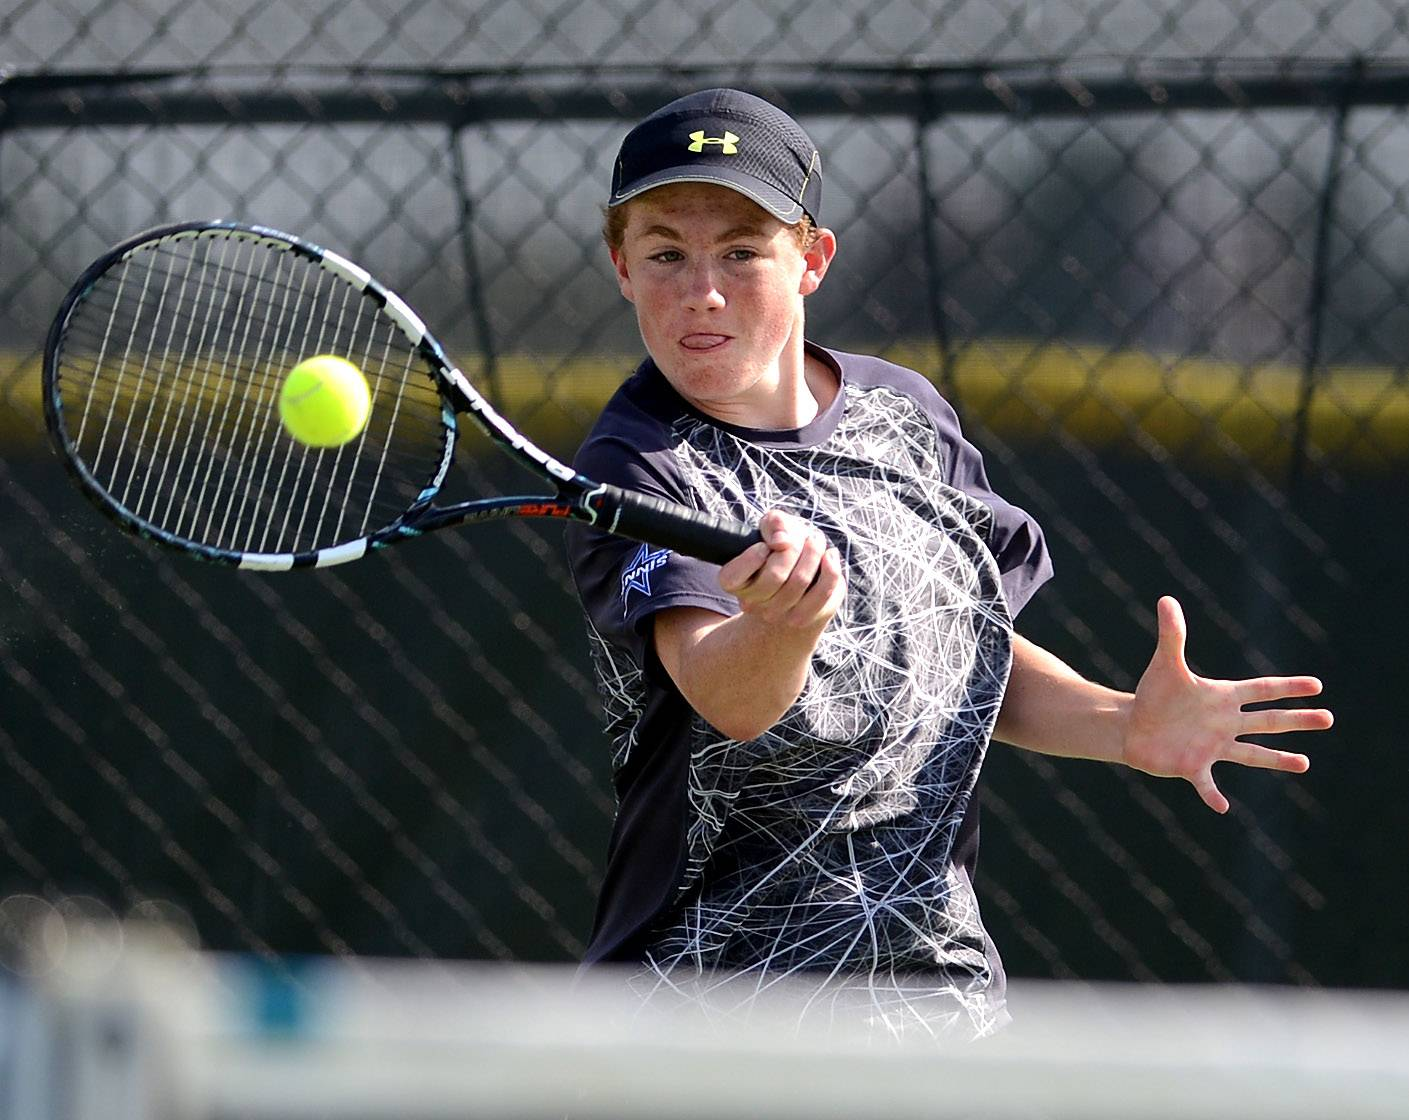 Matt Ernst of St. Charles North returns a serve in a #1 singles match against Tim Murat of Batavia on Thursday.